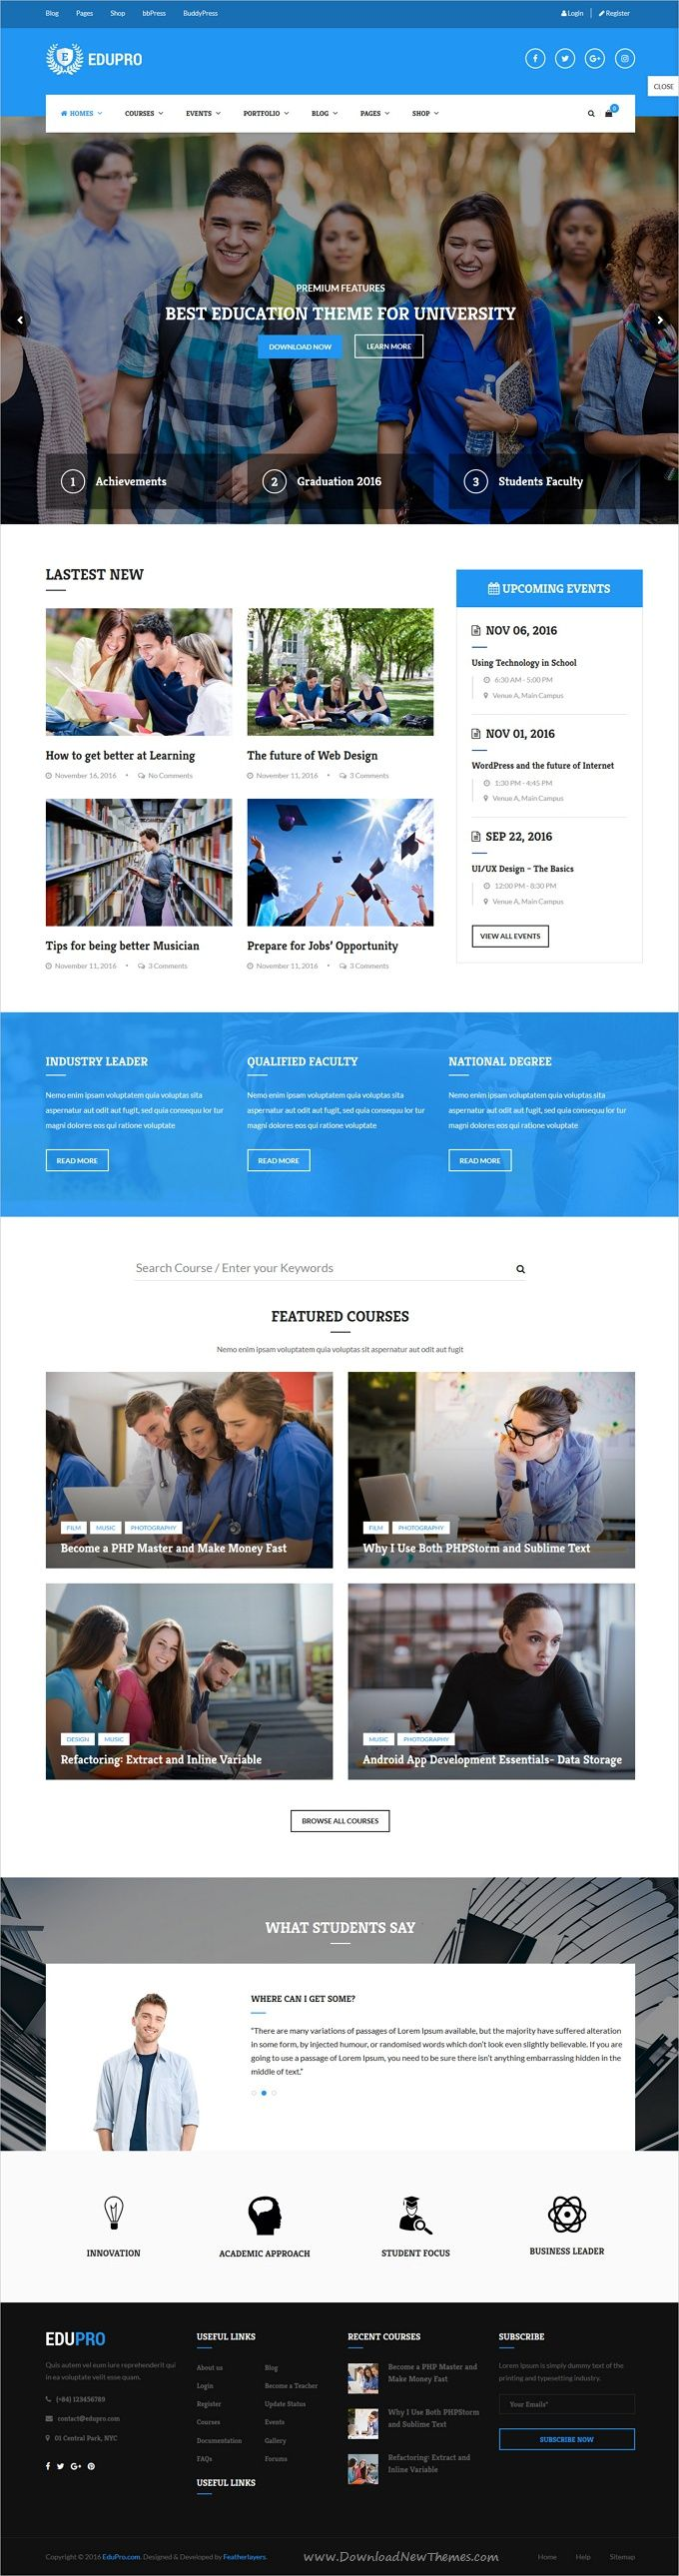 Education is a wonderful 10in1 responsive #WordPress theme  for #university, #college, #school, online courses and other education related websites download now➩ https://themeforest.net/item/edupro-professional-wordpress-education-theme/17591912?ref=Datasata